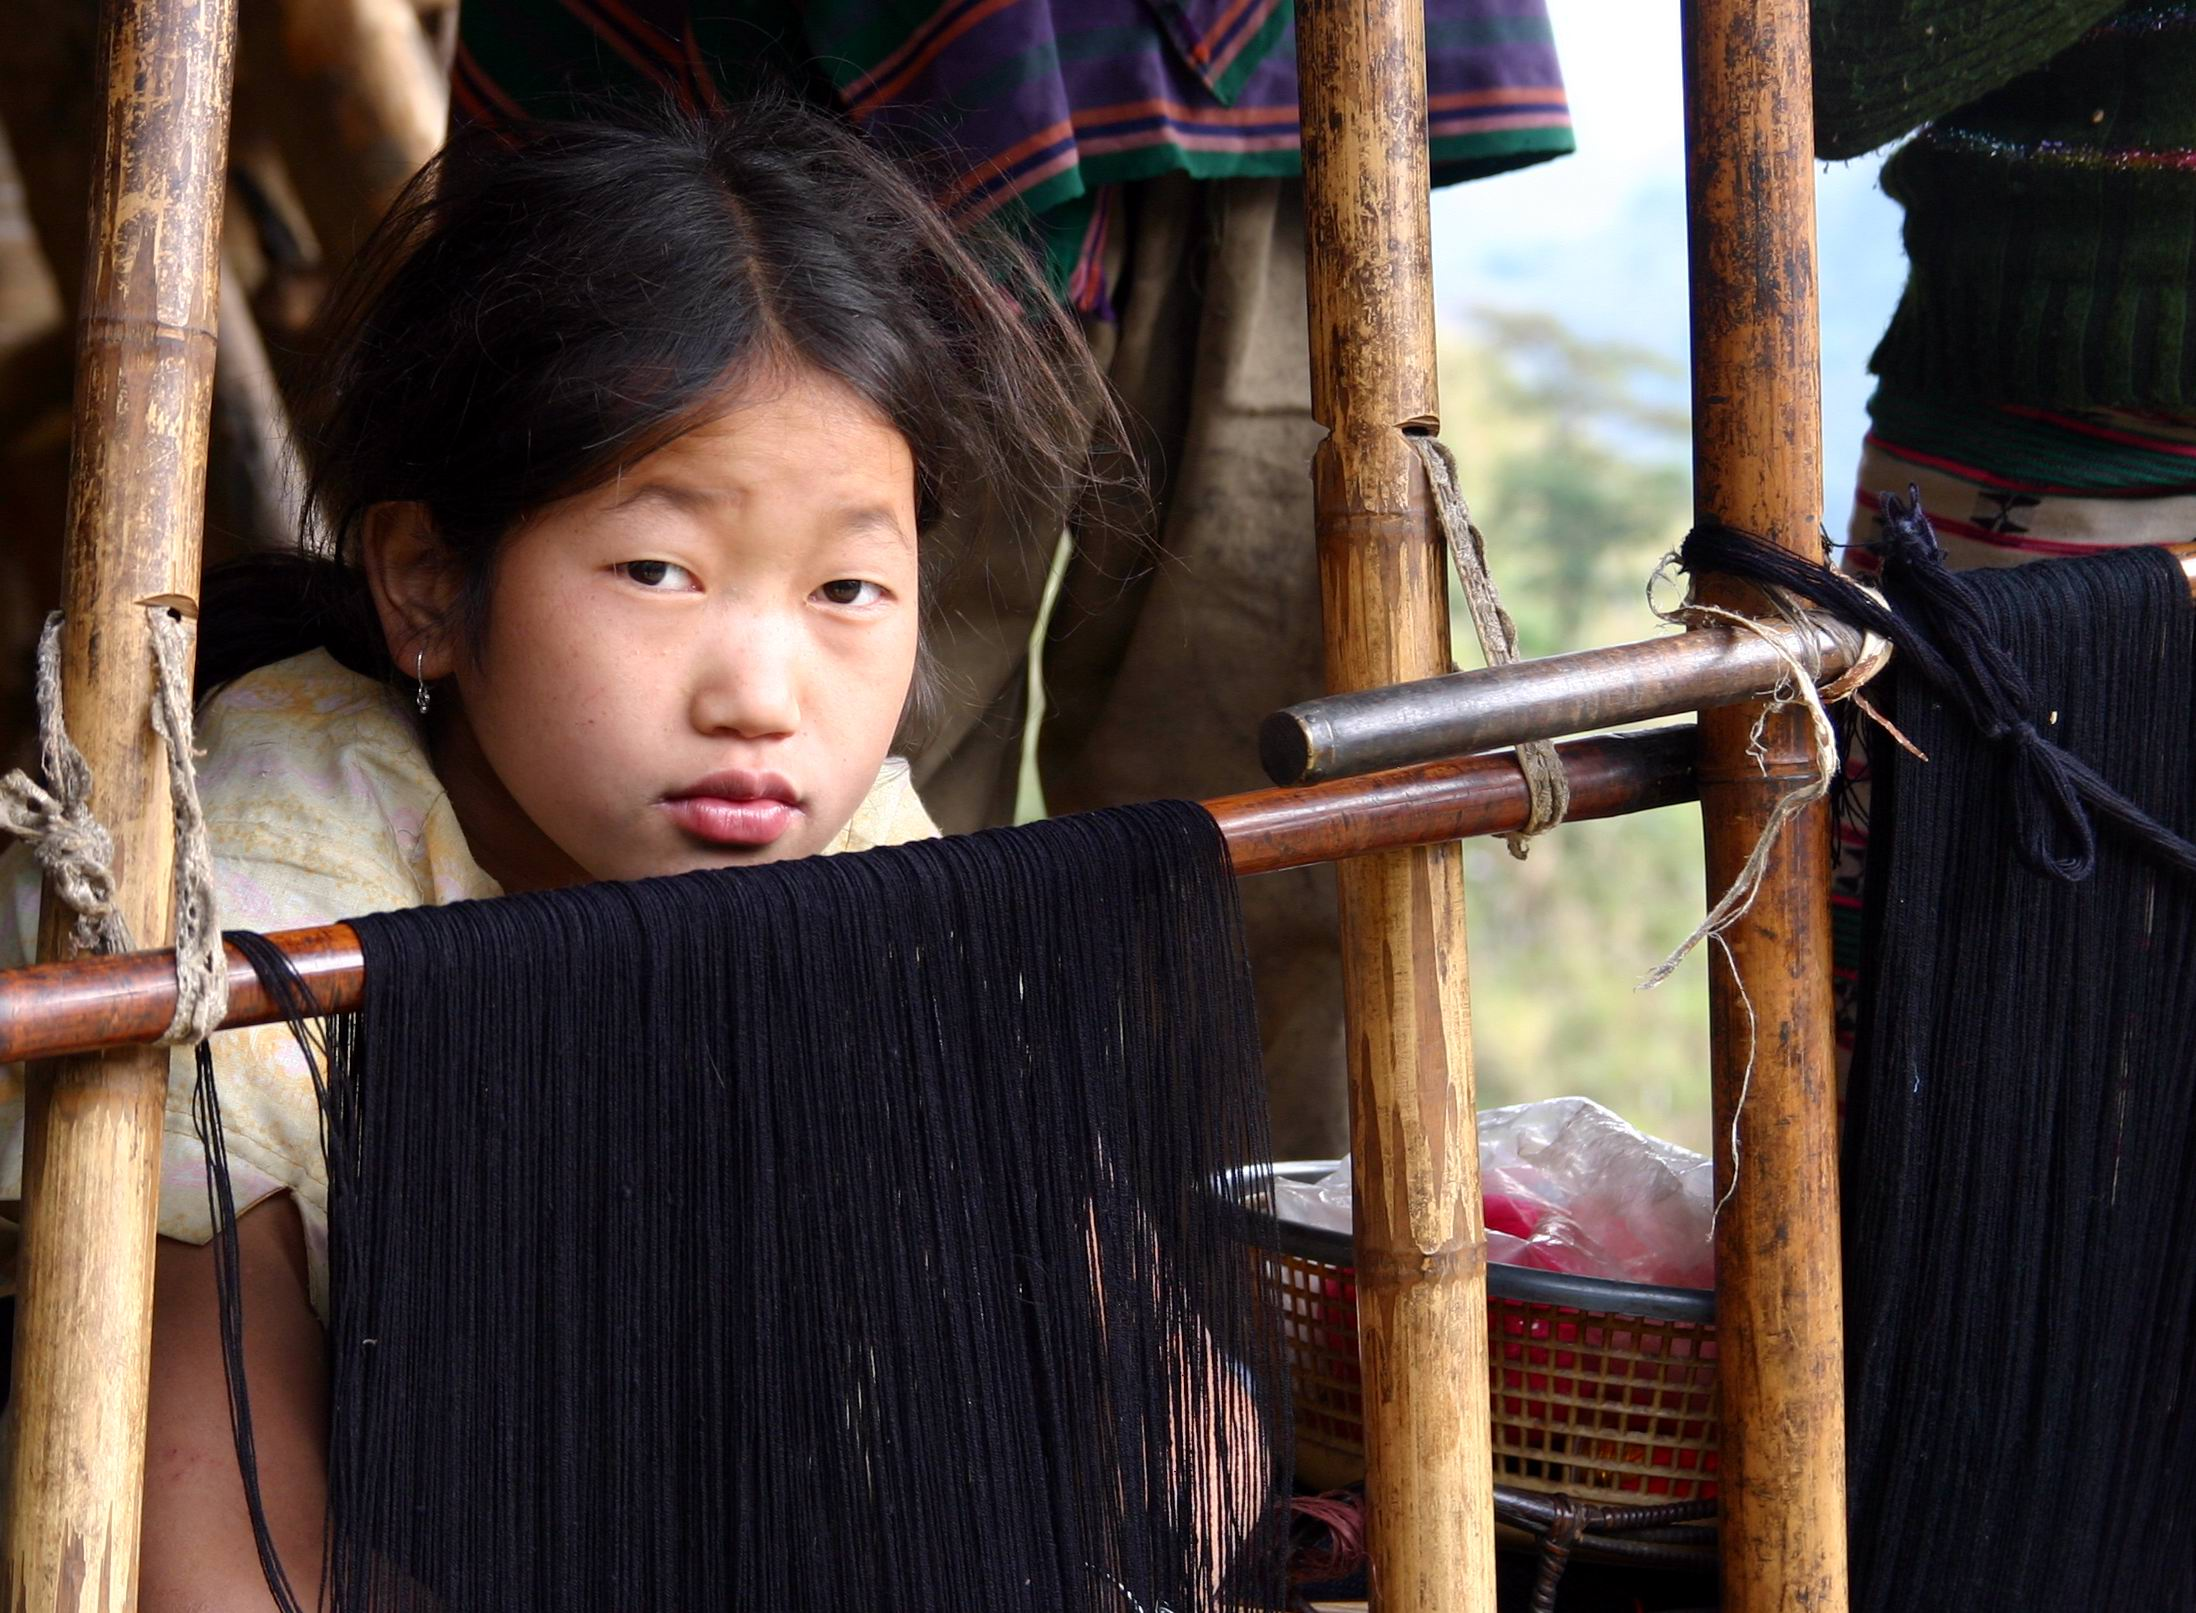 Photo of a girl: India Arunachal Pradesh Mishmi by Chris Erni